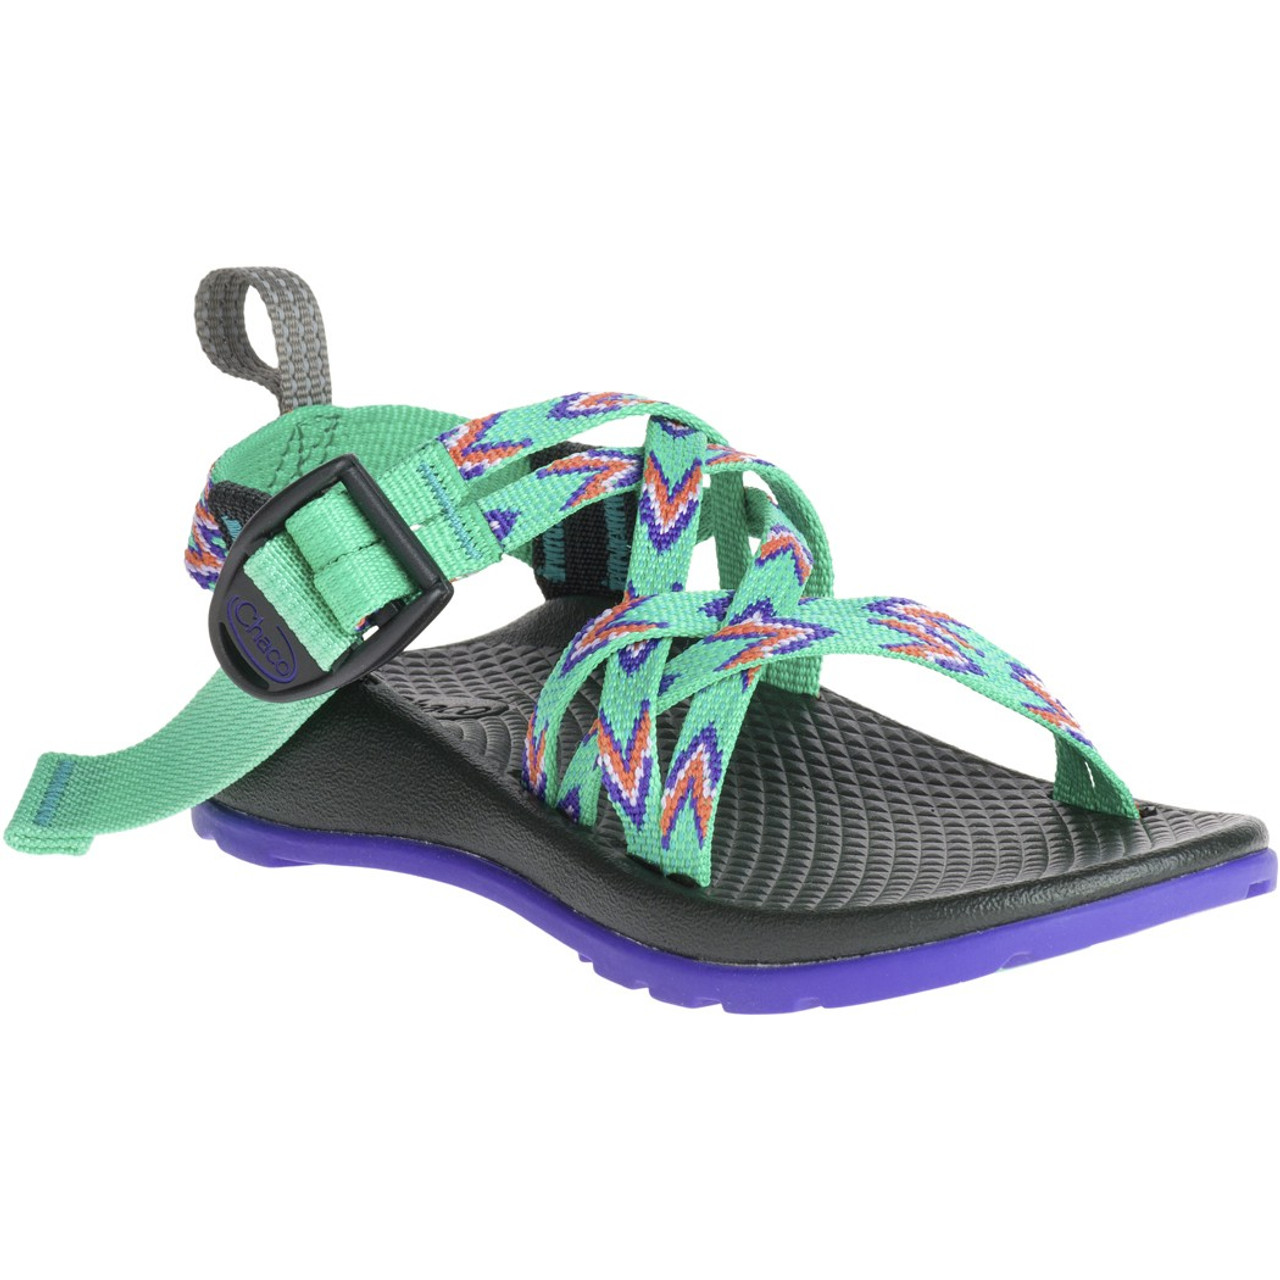 e5e6b1e0b074 Chacos Kid s Sandals - ZX 1 Ecotread - Mint Leaf - Surf and Dirt